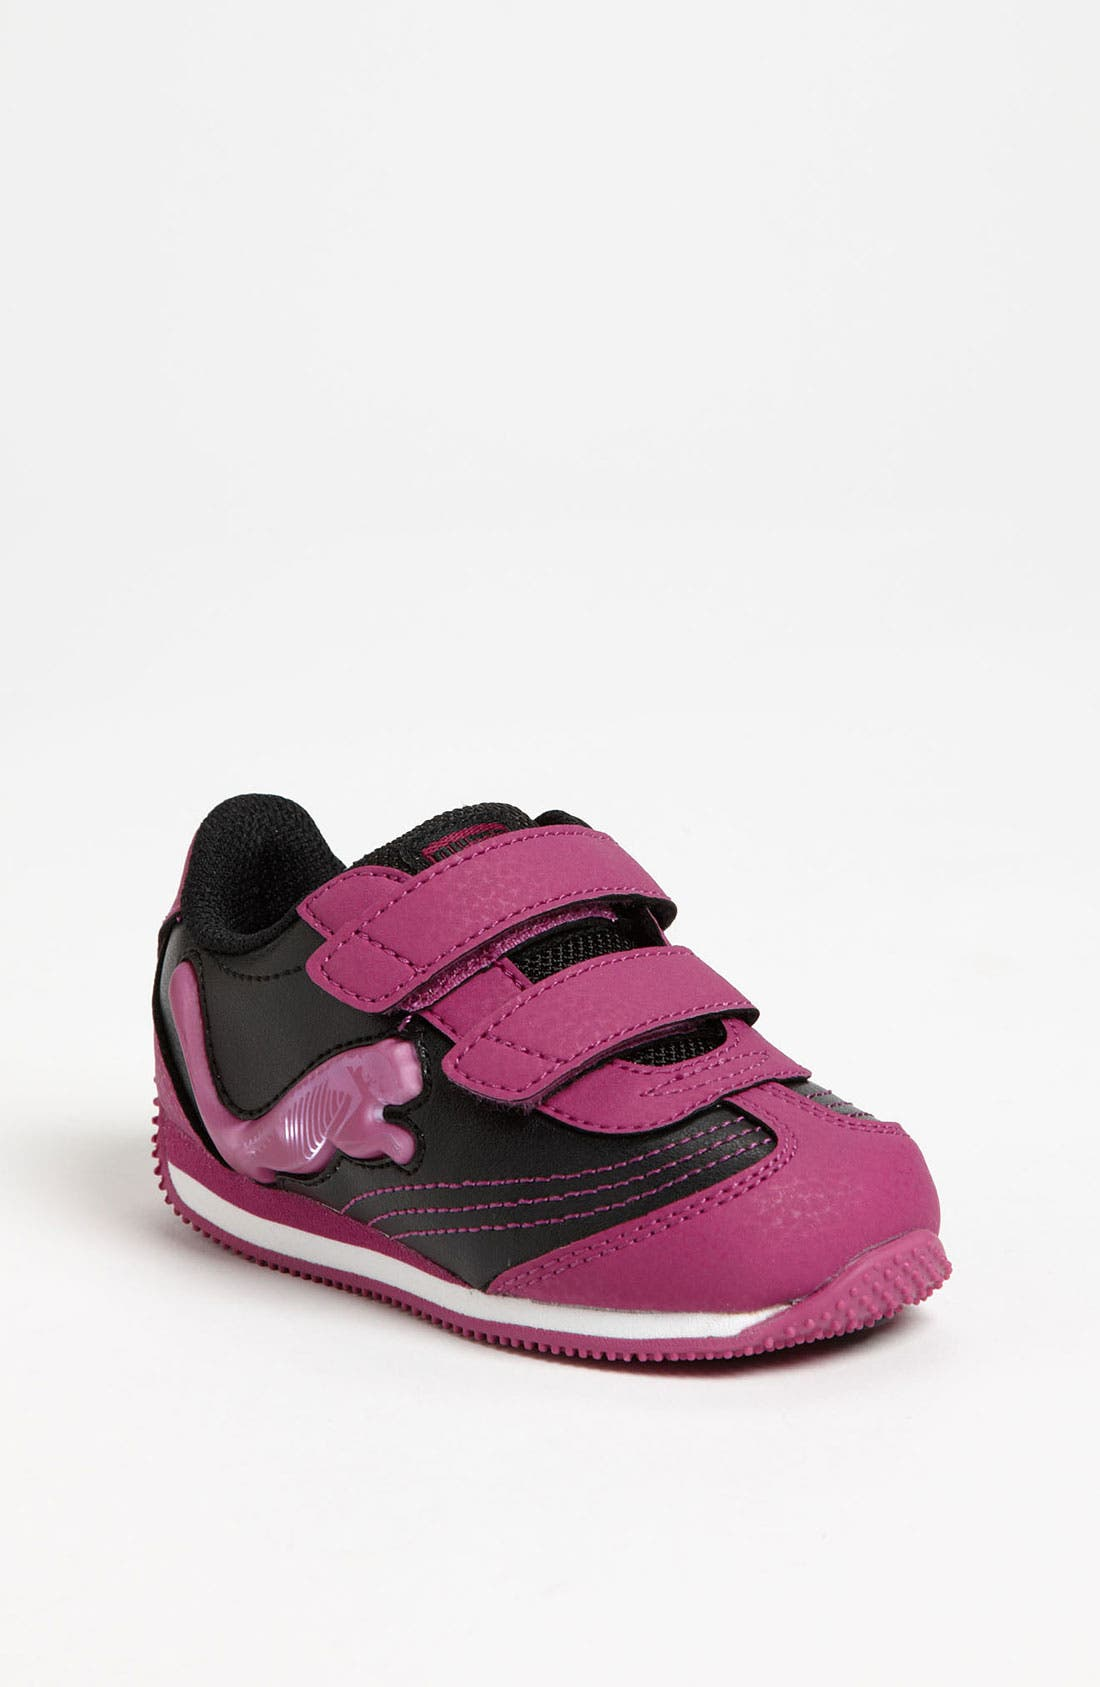 Alternate Image 1 Selected - PUMA 'Speeder Illuminescent' Sneaker (Baby, Walker & Toddler)